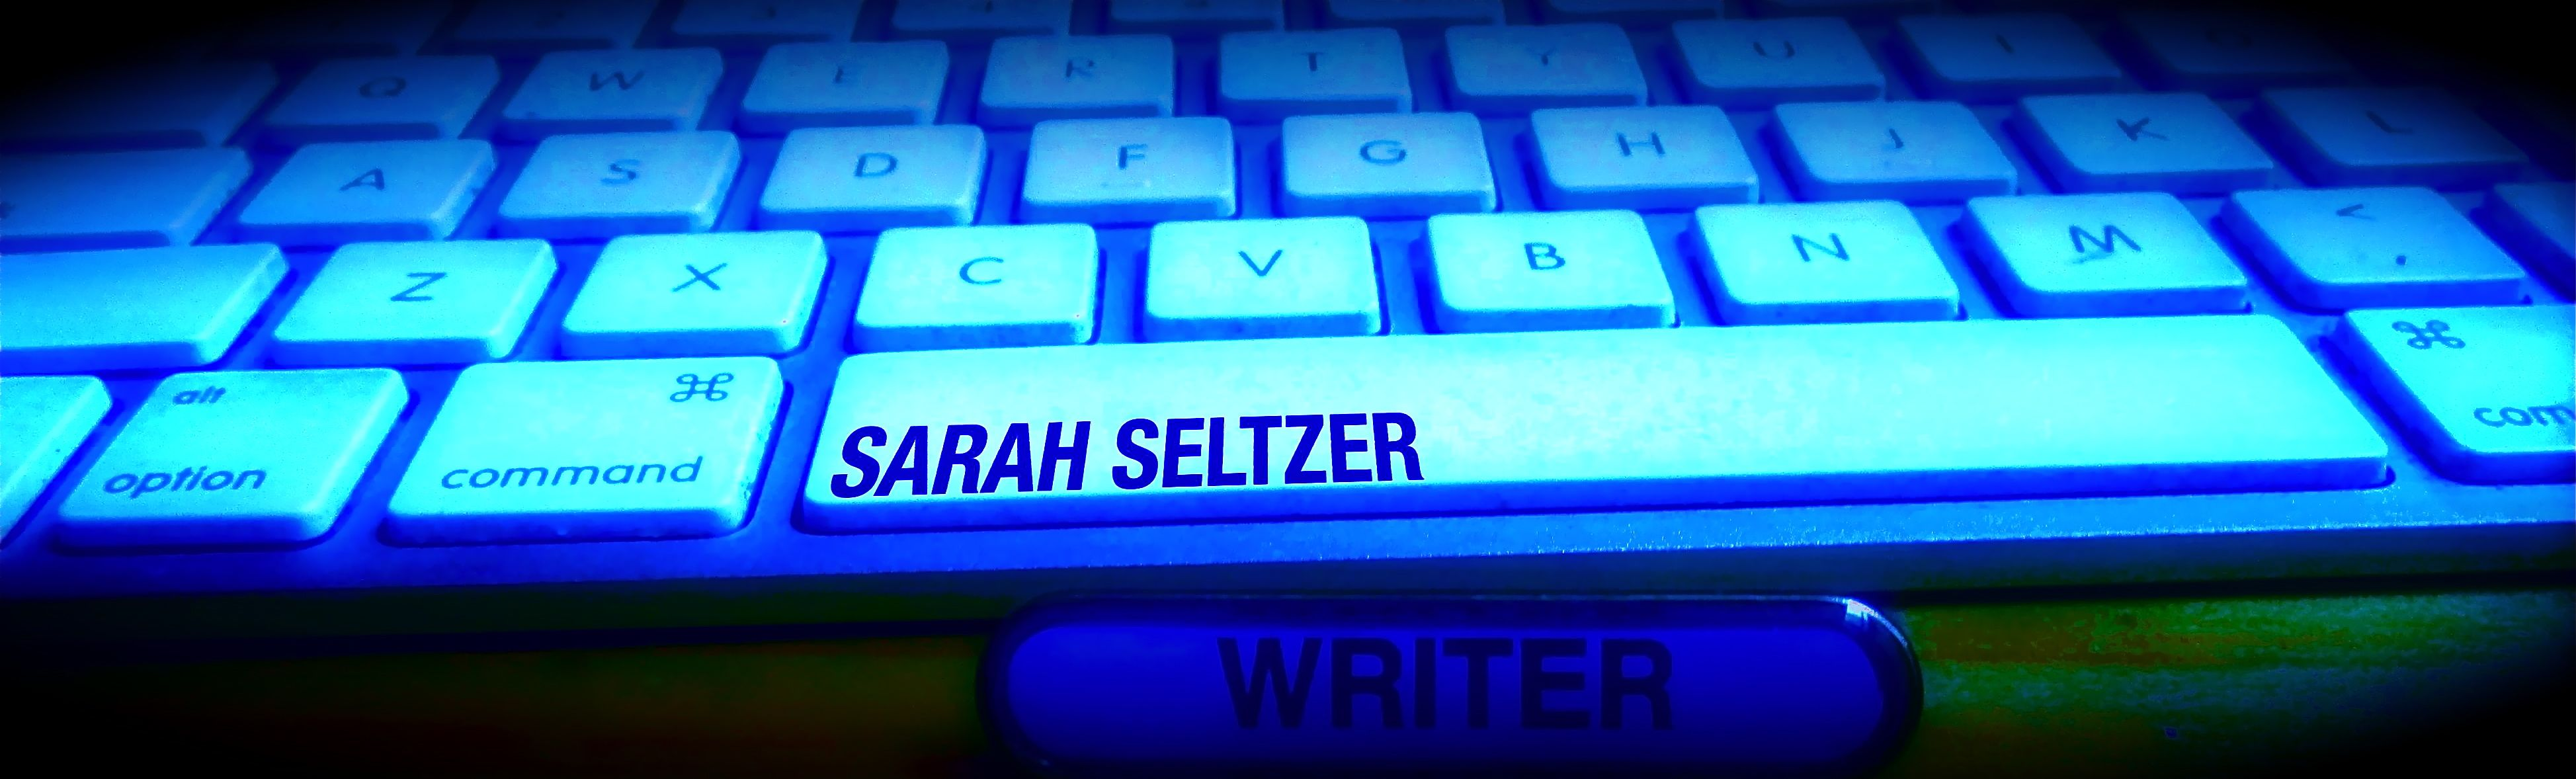 Sarah Marian: Writing only leads to more writing